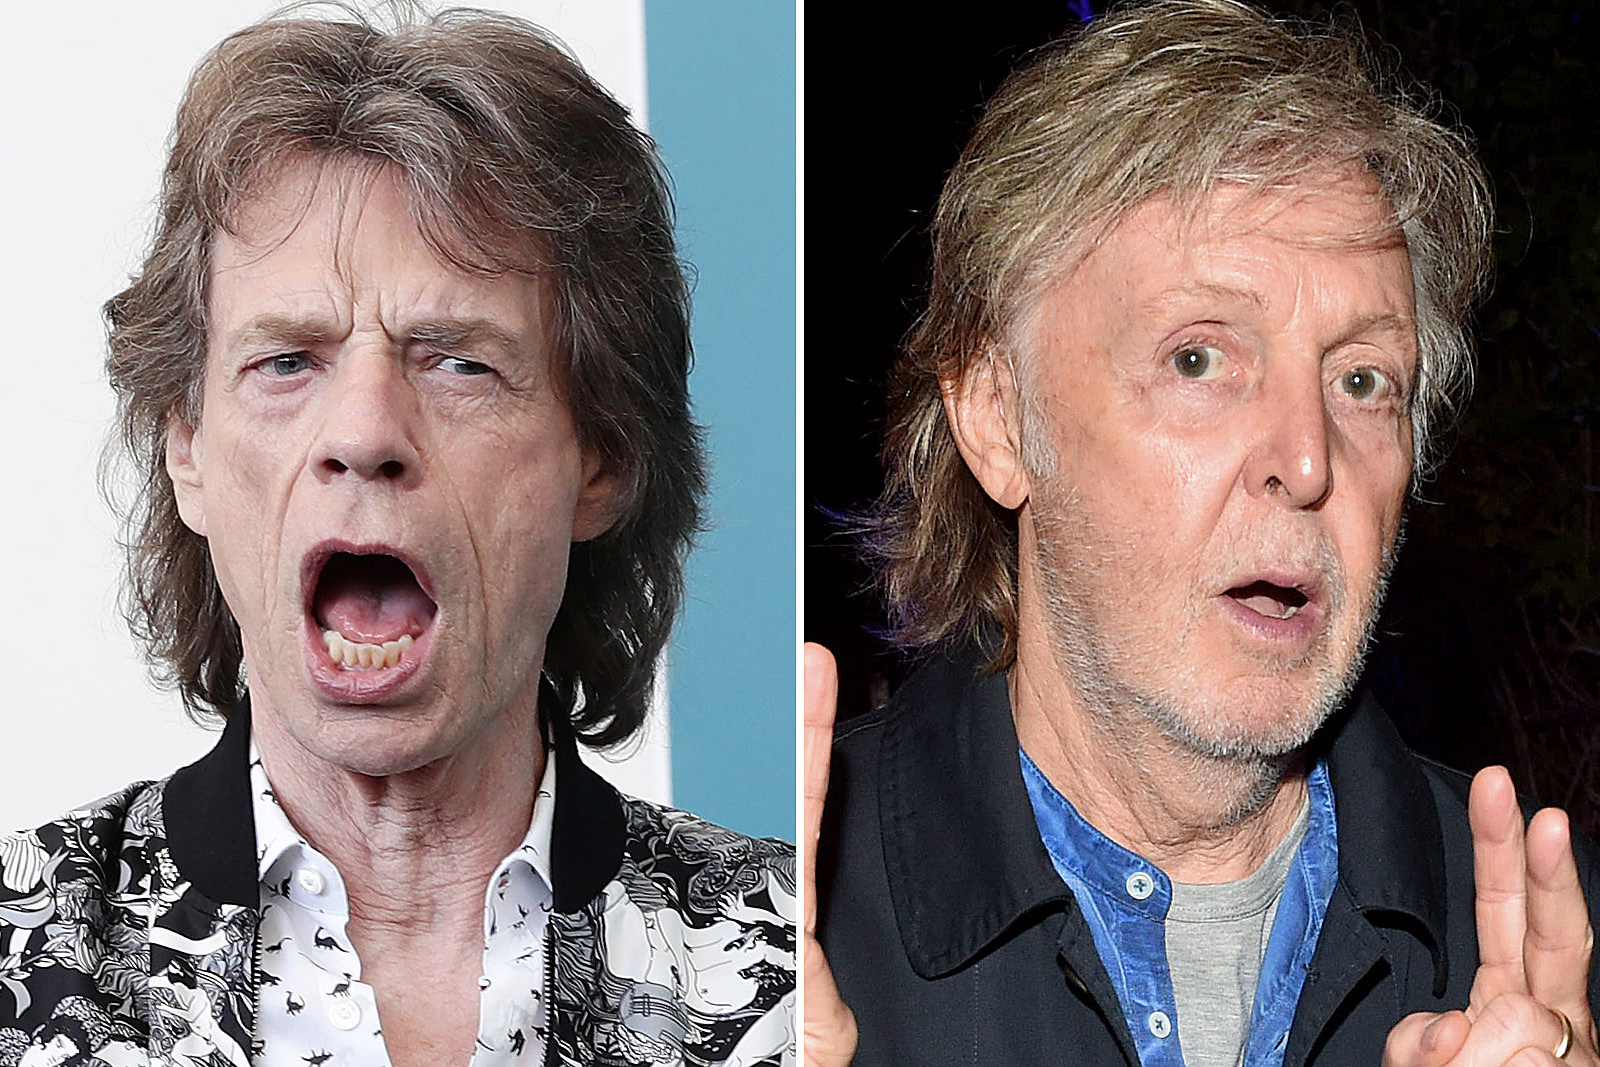 Watch Mick Jagger Respond to Paul McCartney's 'Cover Band' Remark